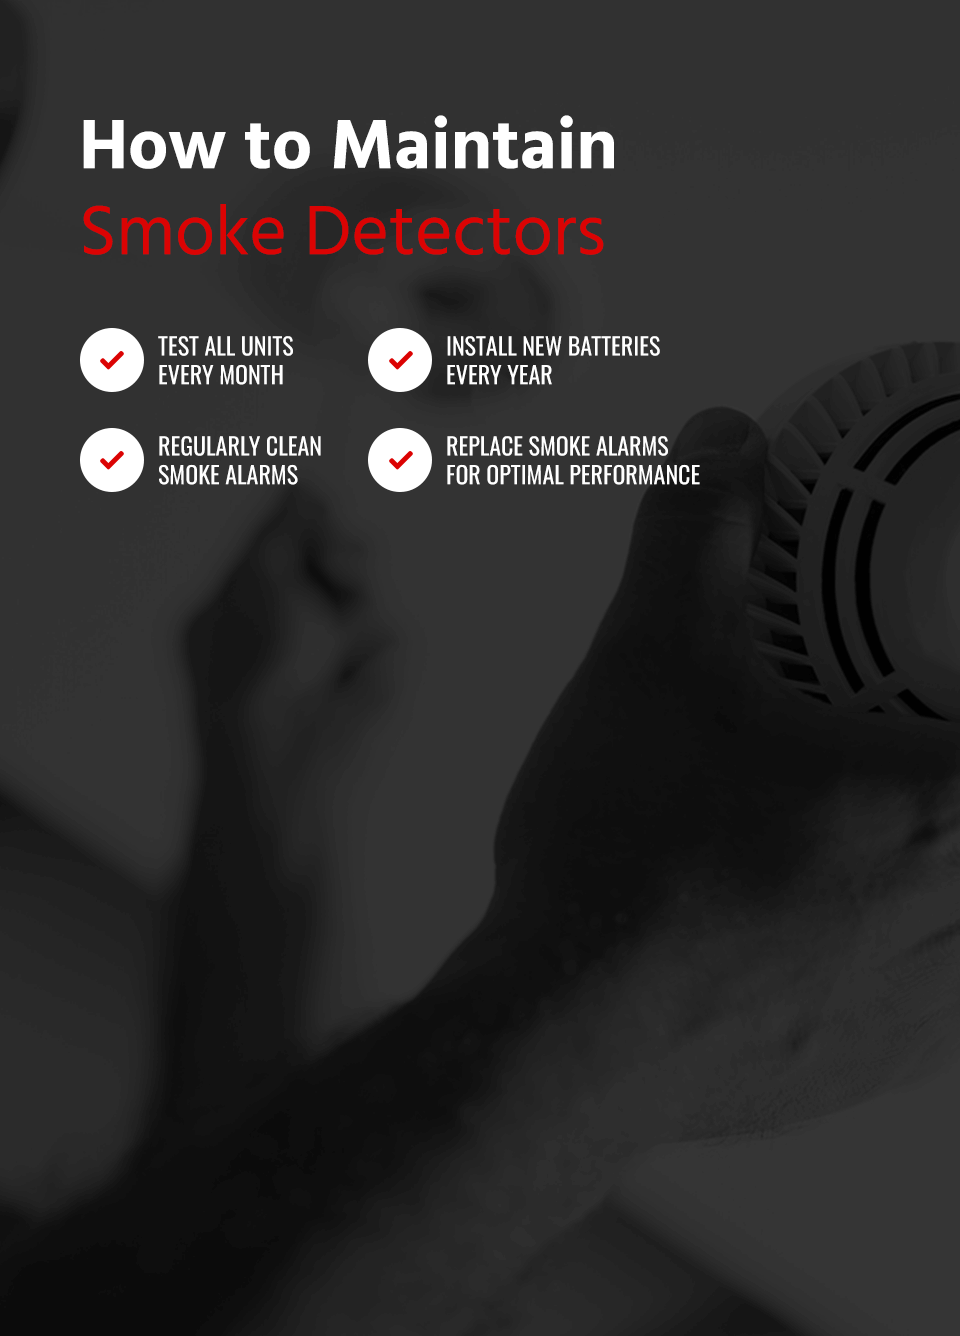 how to maintain smoke detectors